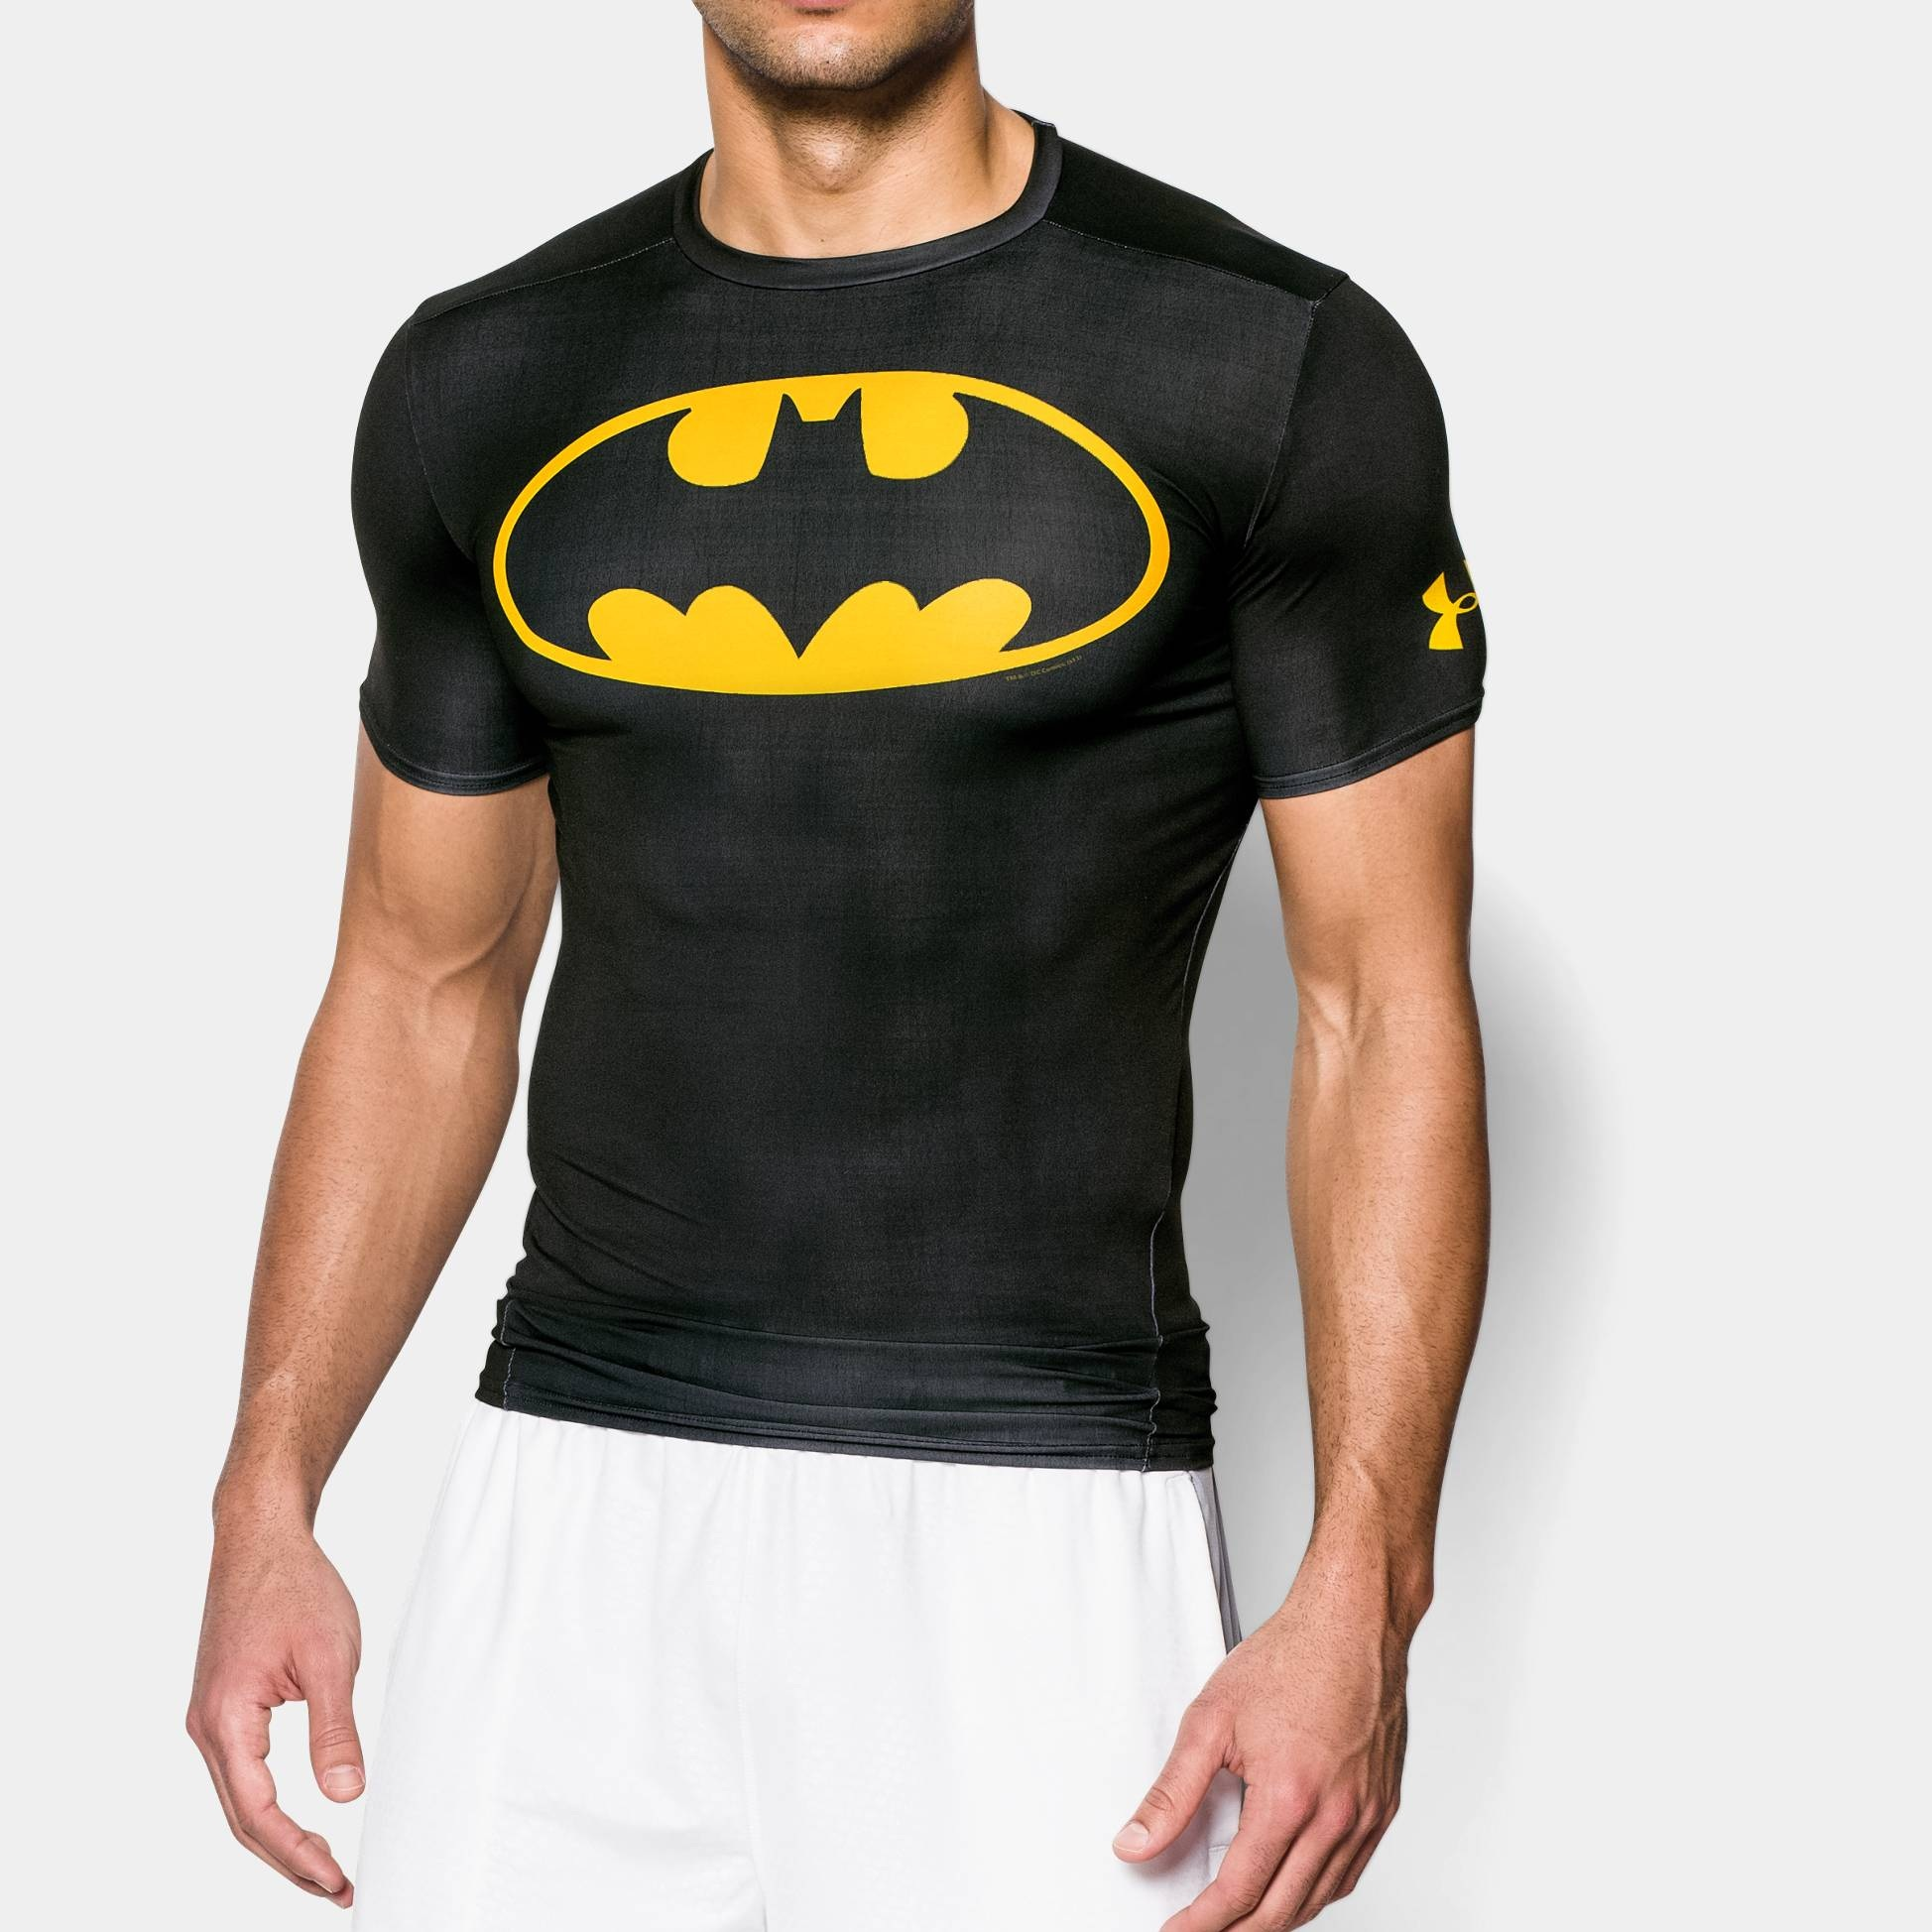 Fitness clothing under armour ss compression shirt for Sports shirts near me